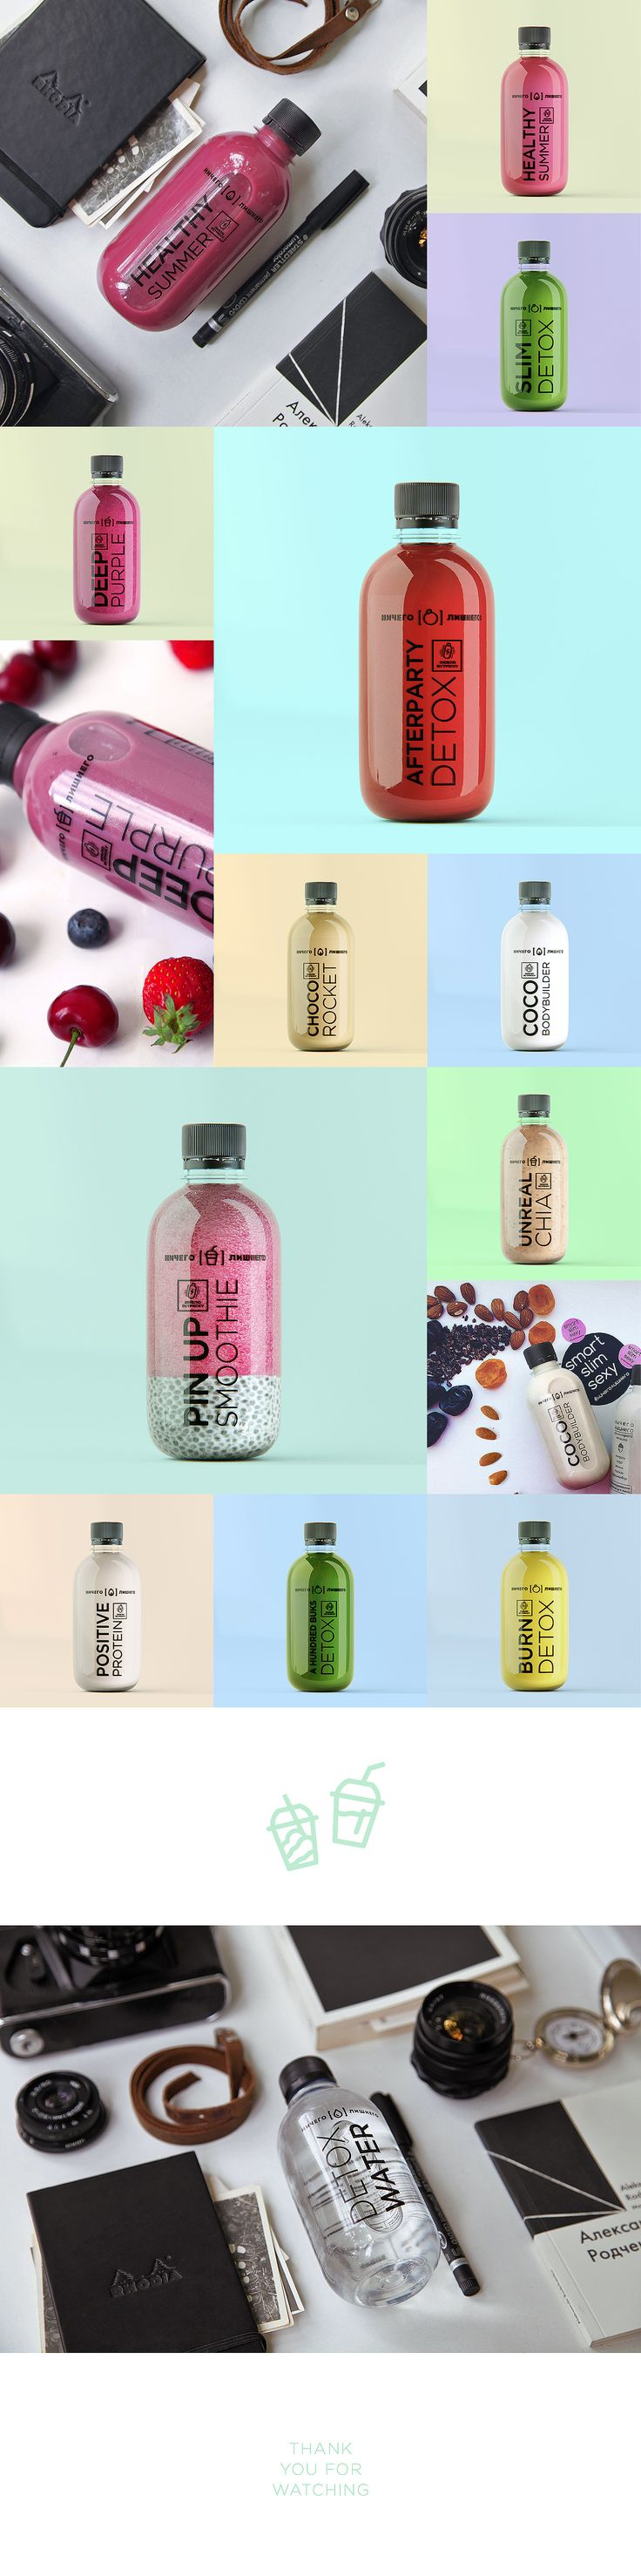 Package design for detox products Nichego Lishnego [ rus. - nothing extra, just…